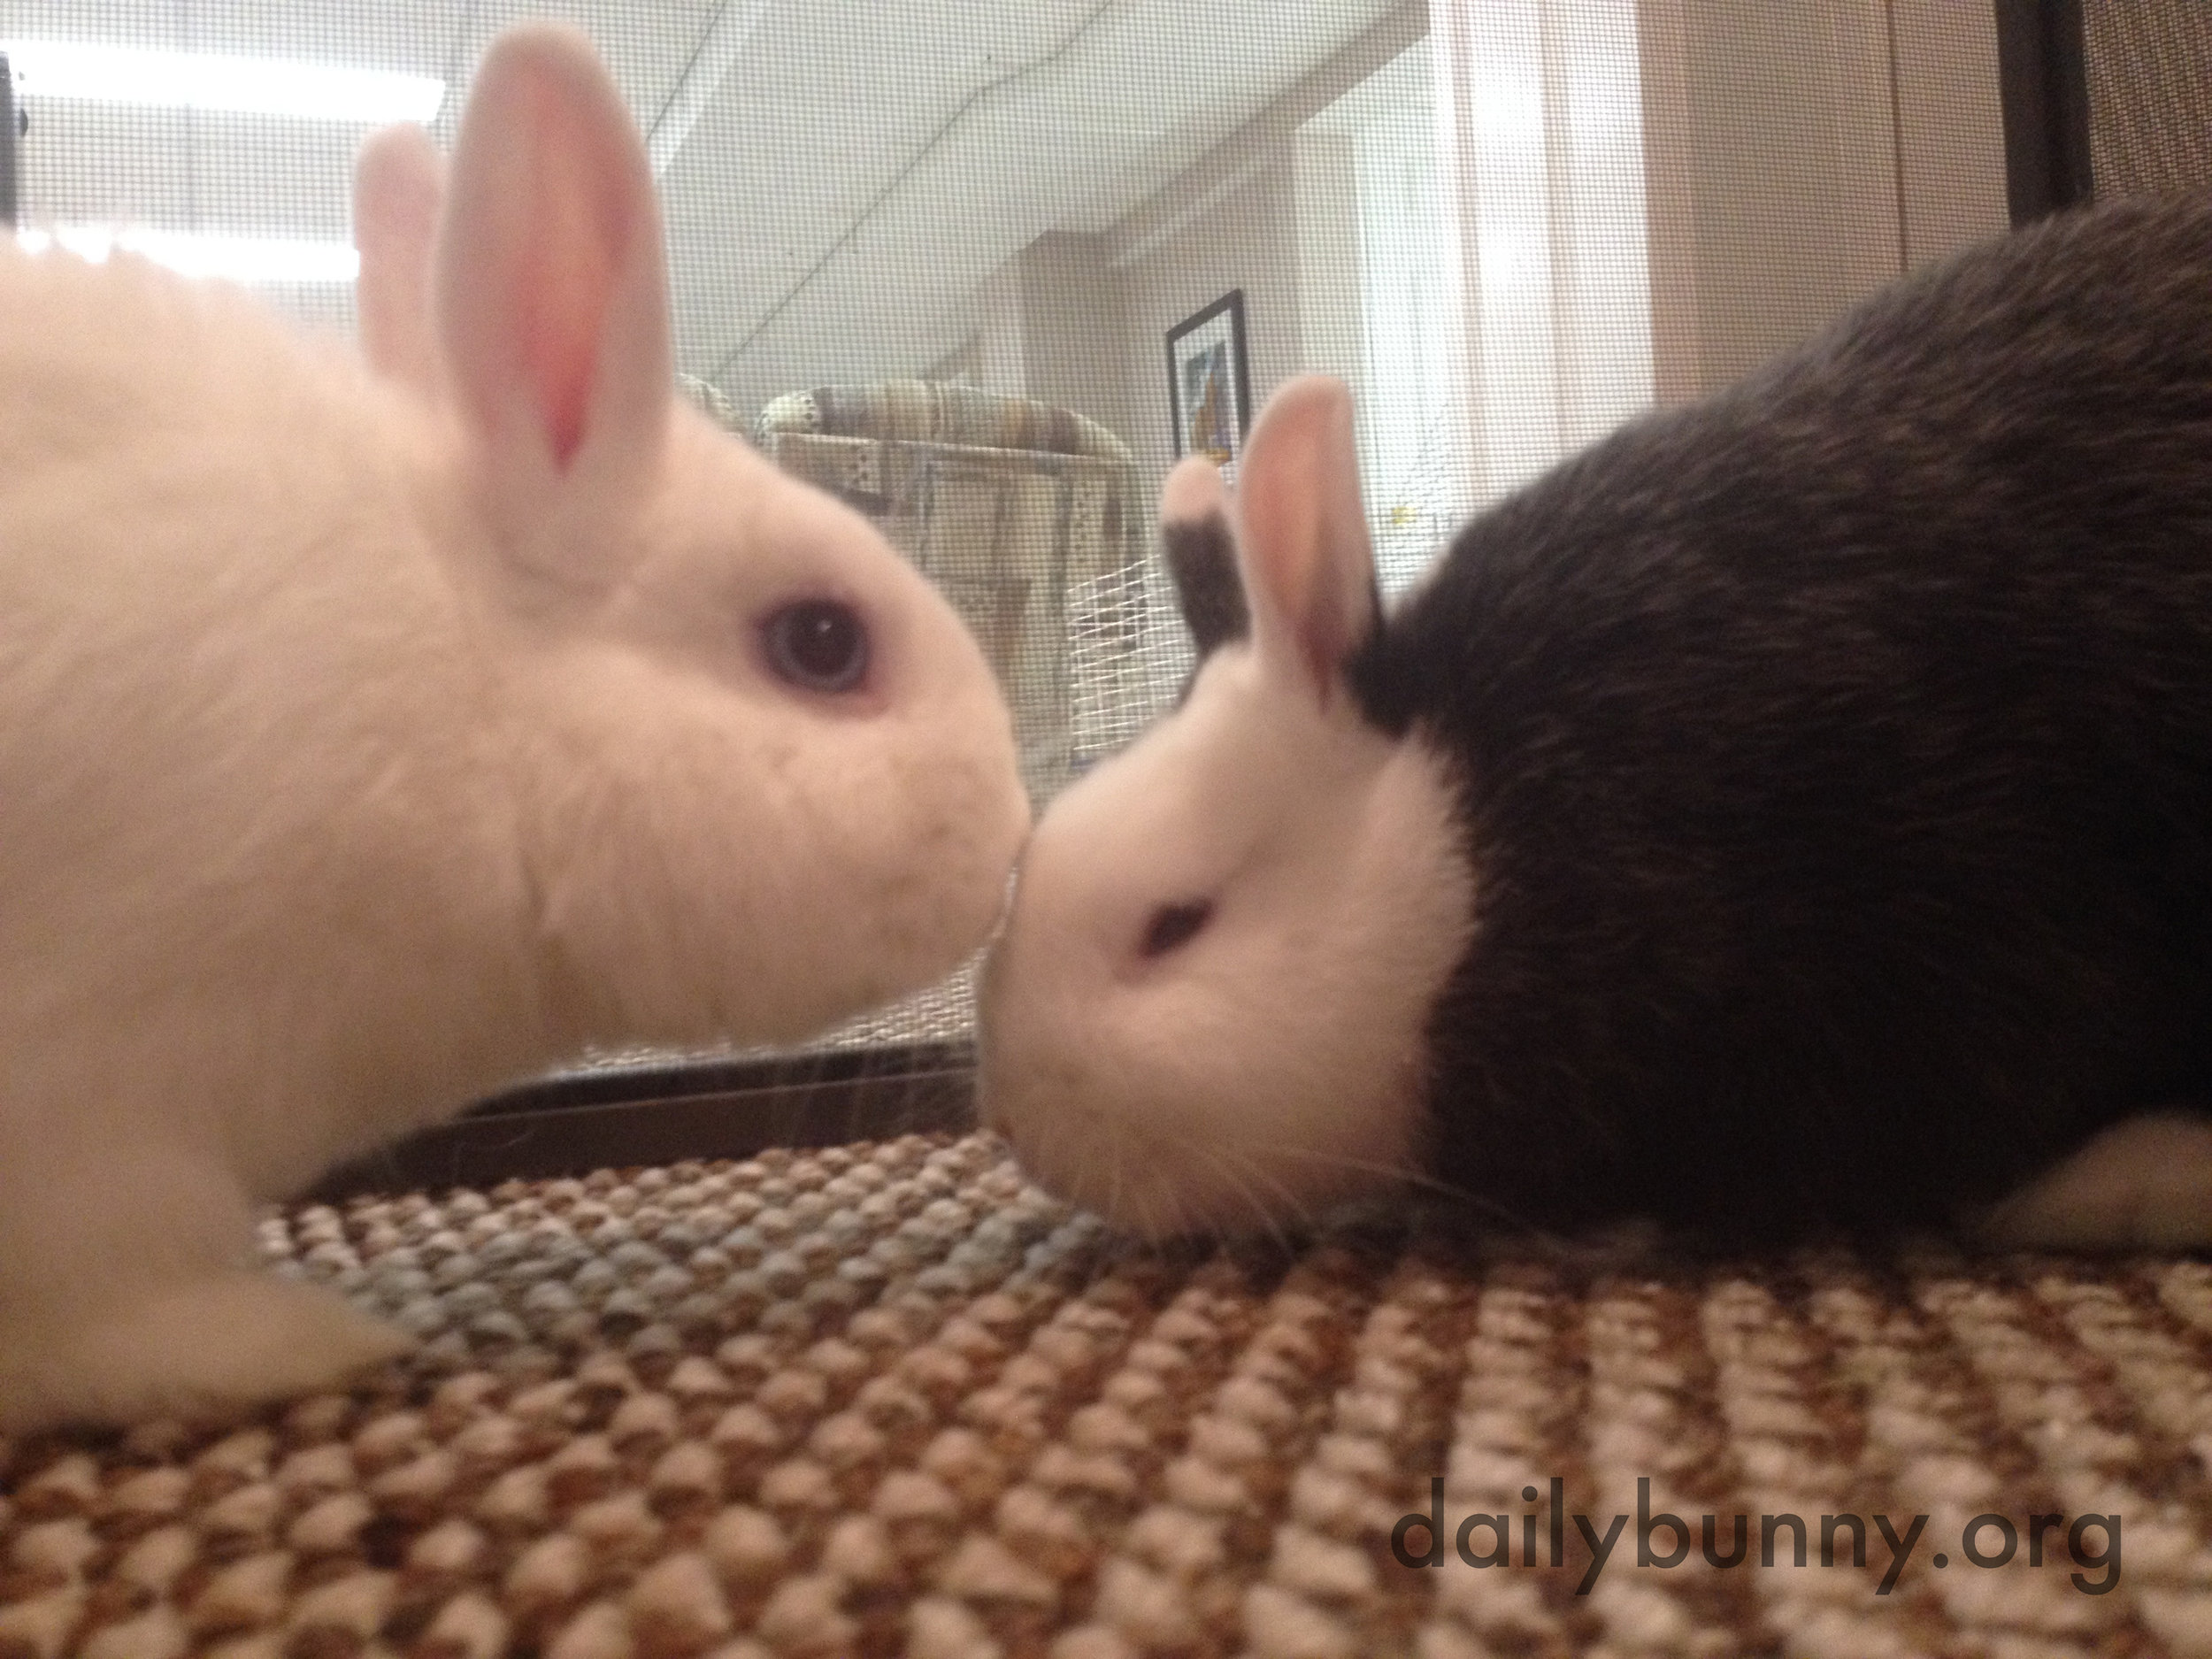 Bonding Bunnies Practice Kisses and Snuggling 1